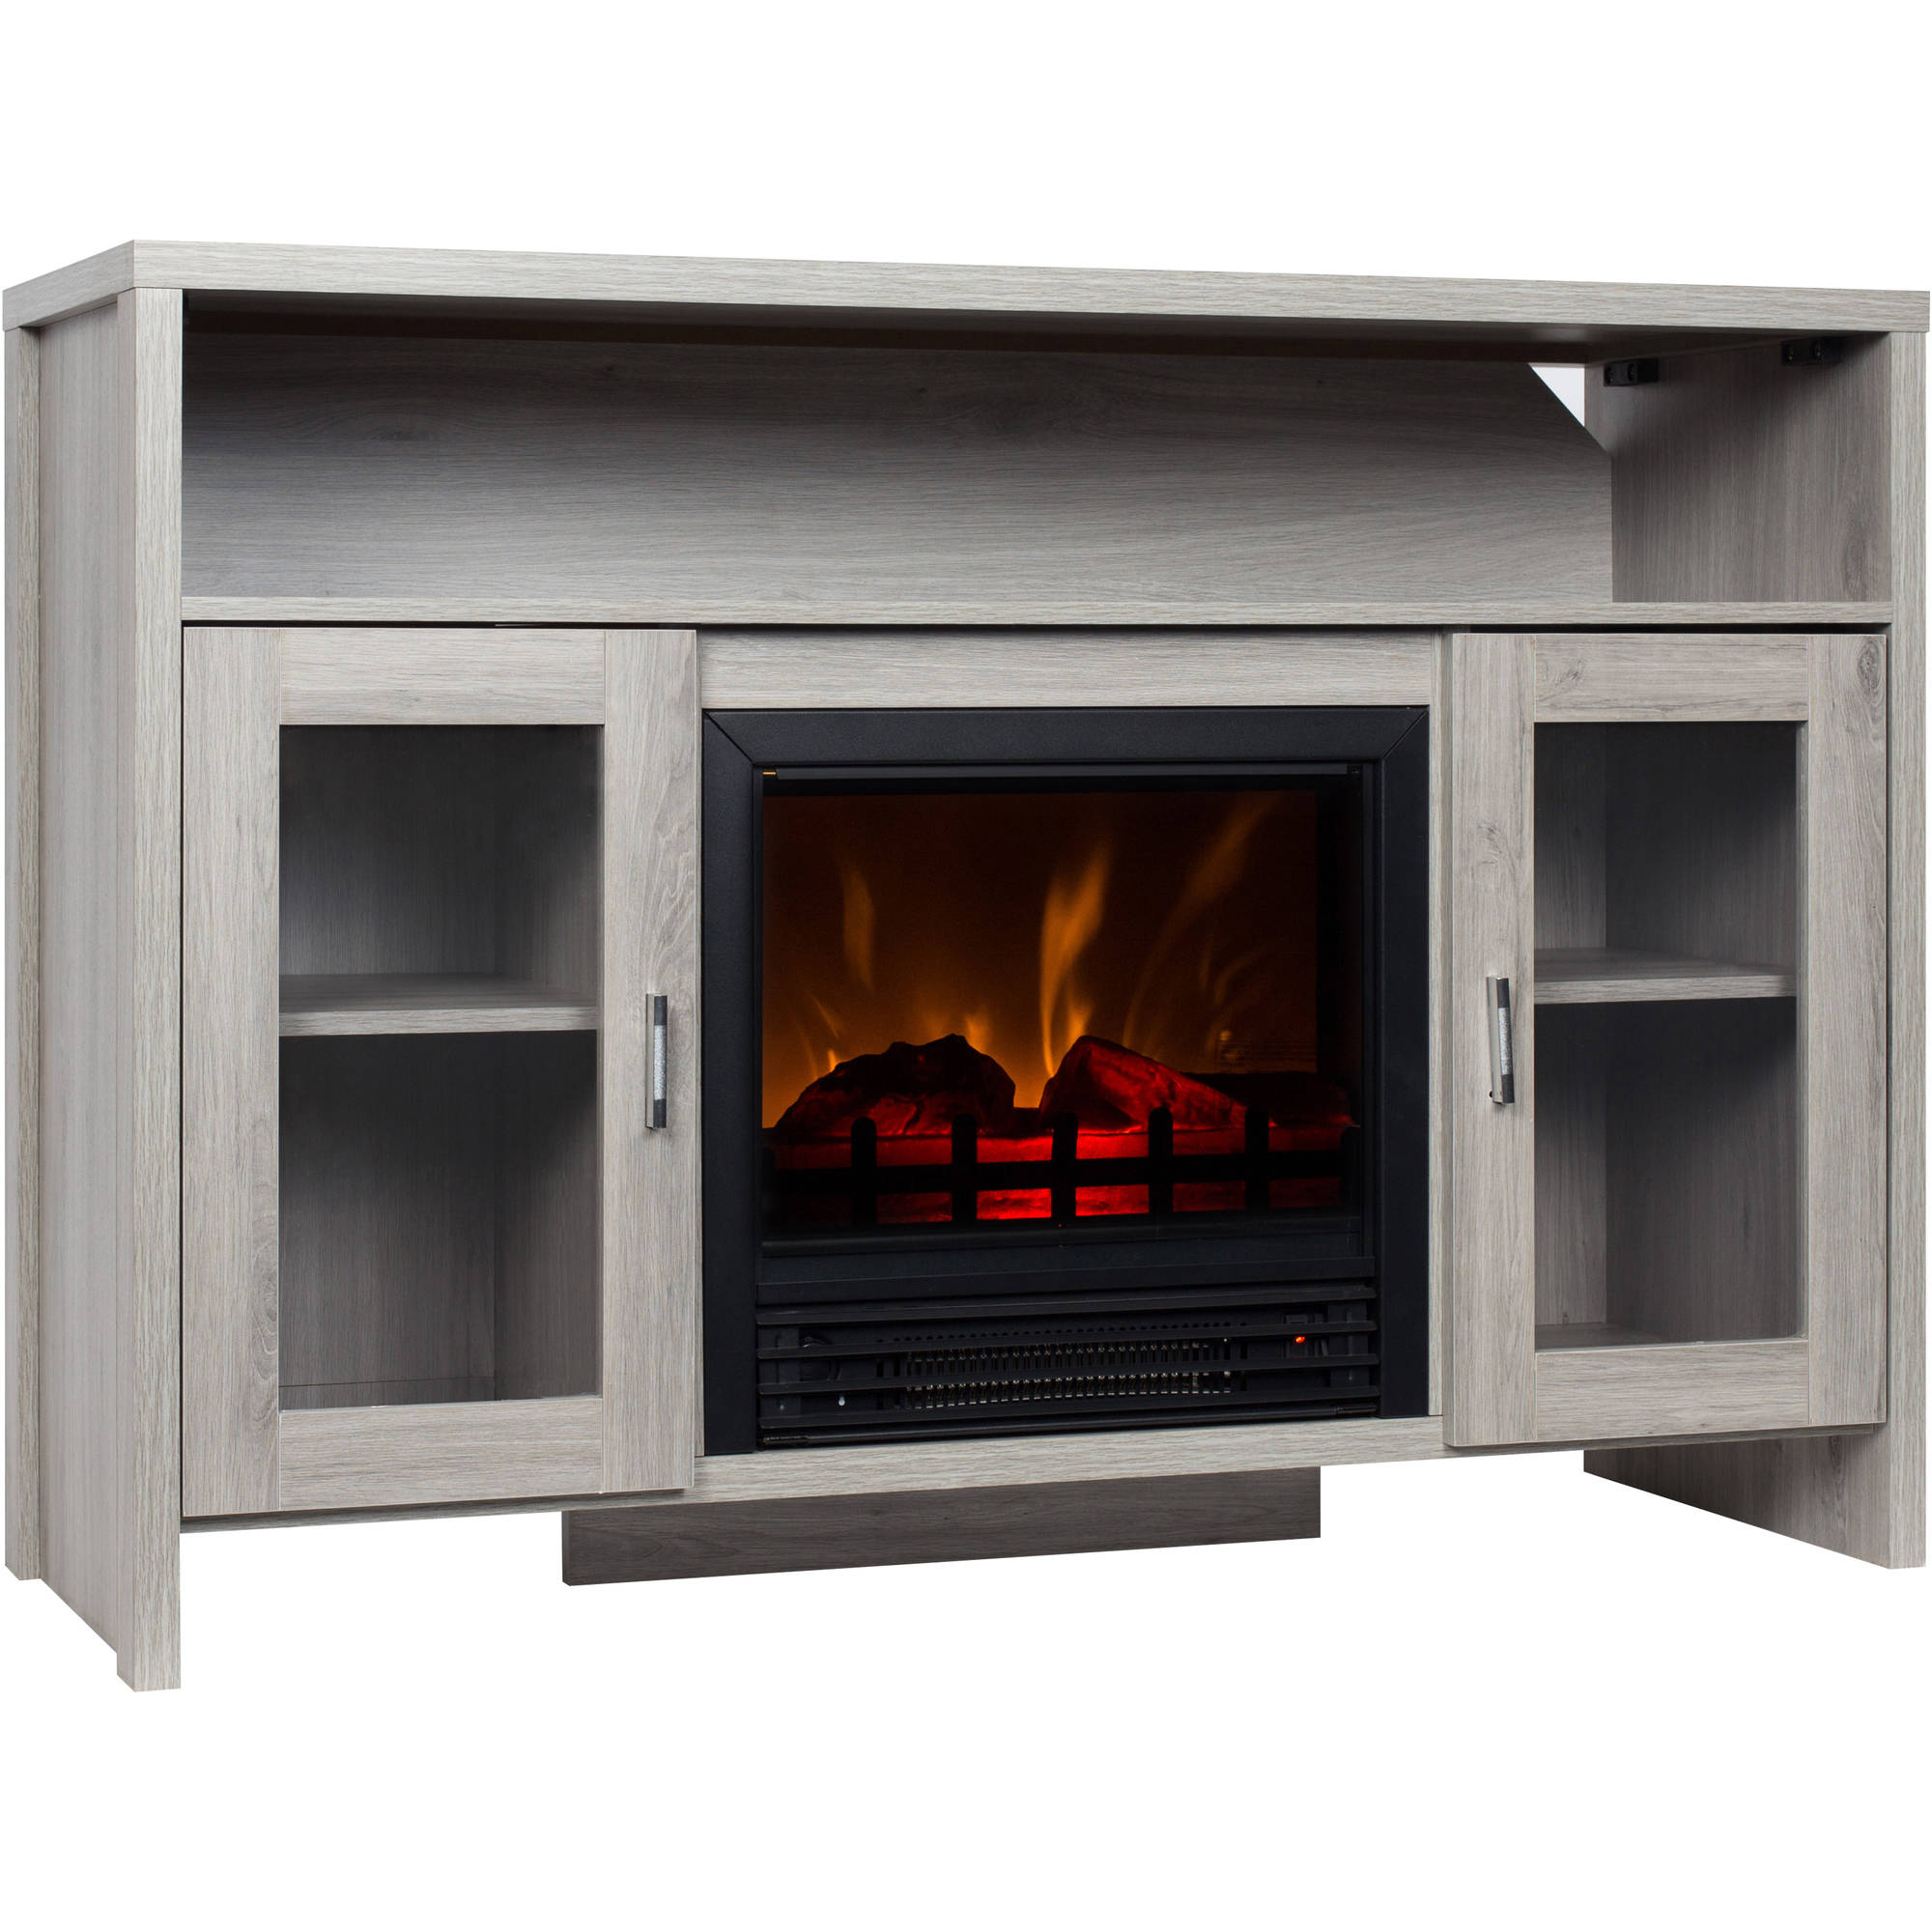 42 inch tv stand with fireplace media console electric entertainment center sale ebay. Black Bedroom Furniture Sets. Home Design Ideas